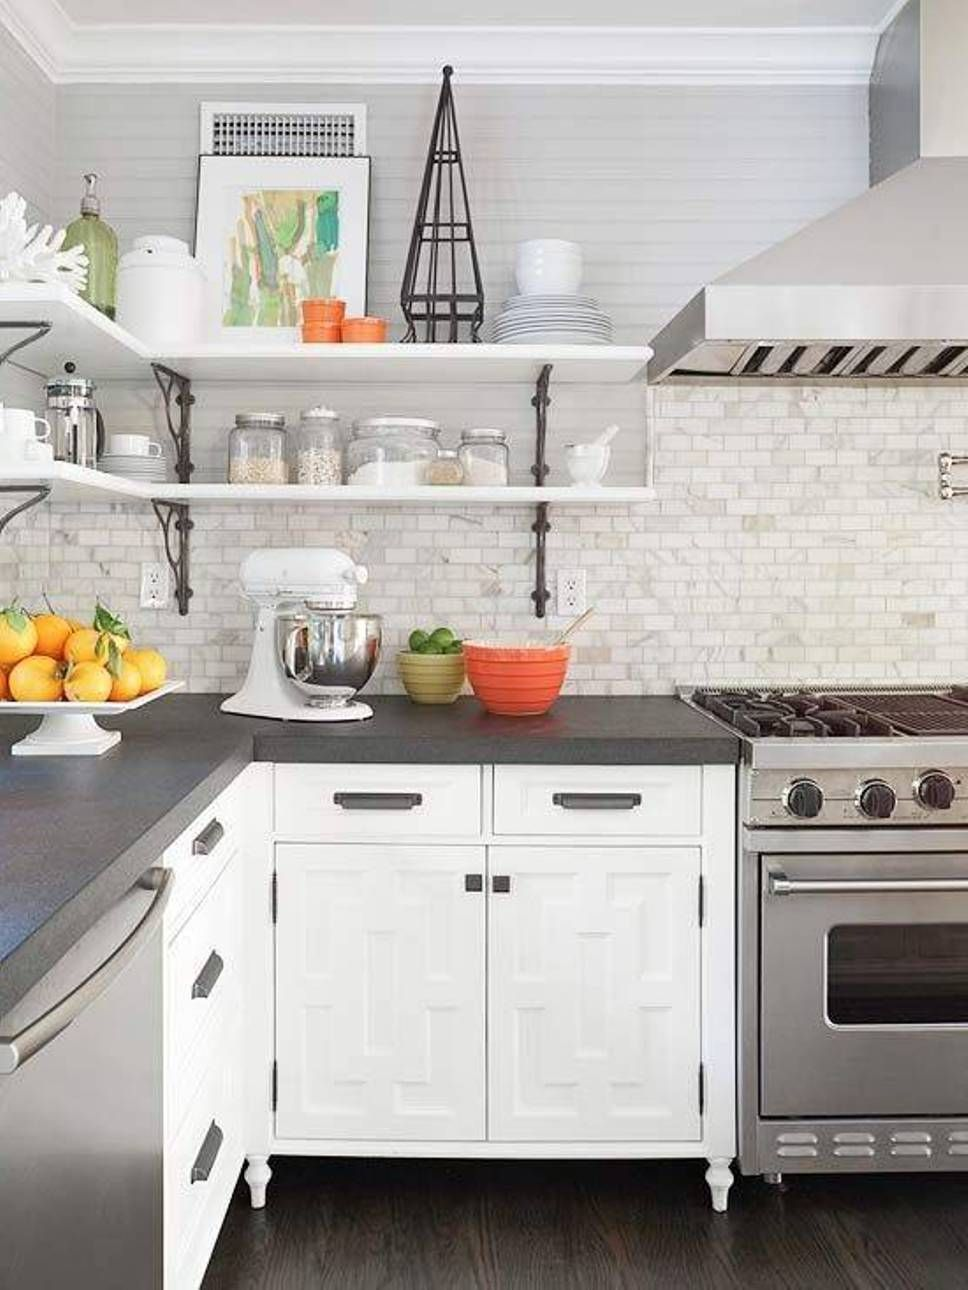 Pin By Susanne Mueller On Kitchen Gray And White Kitchen Small Kitchen Cabinets Kitchen Cabinets